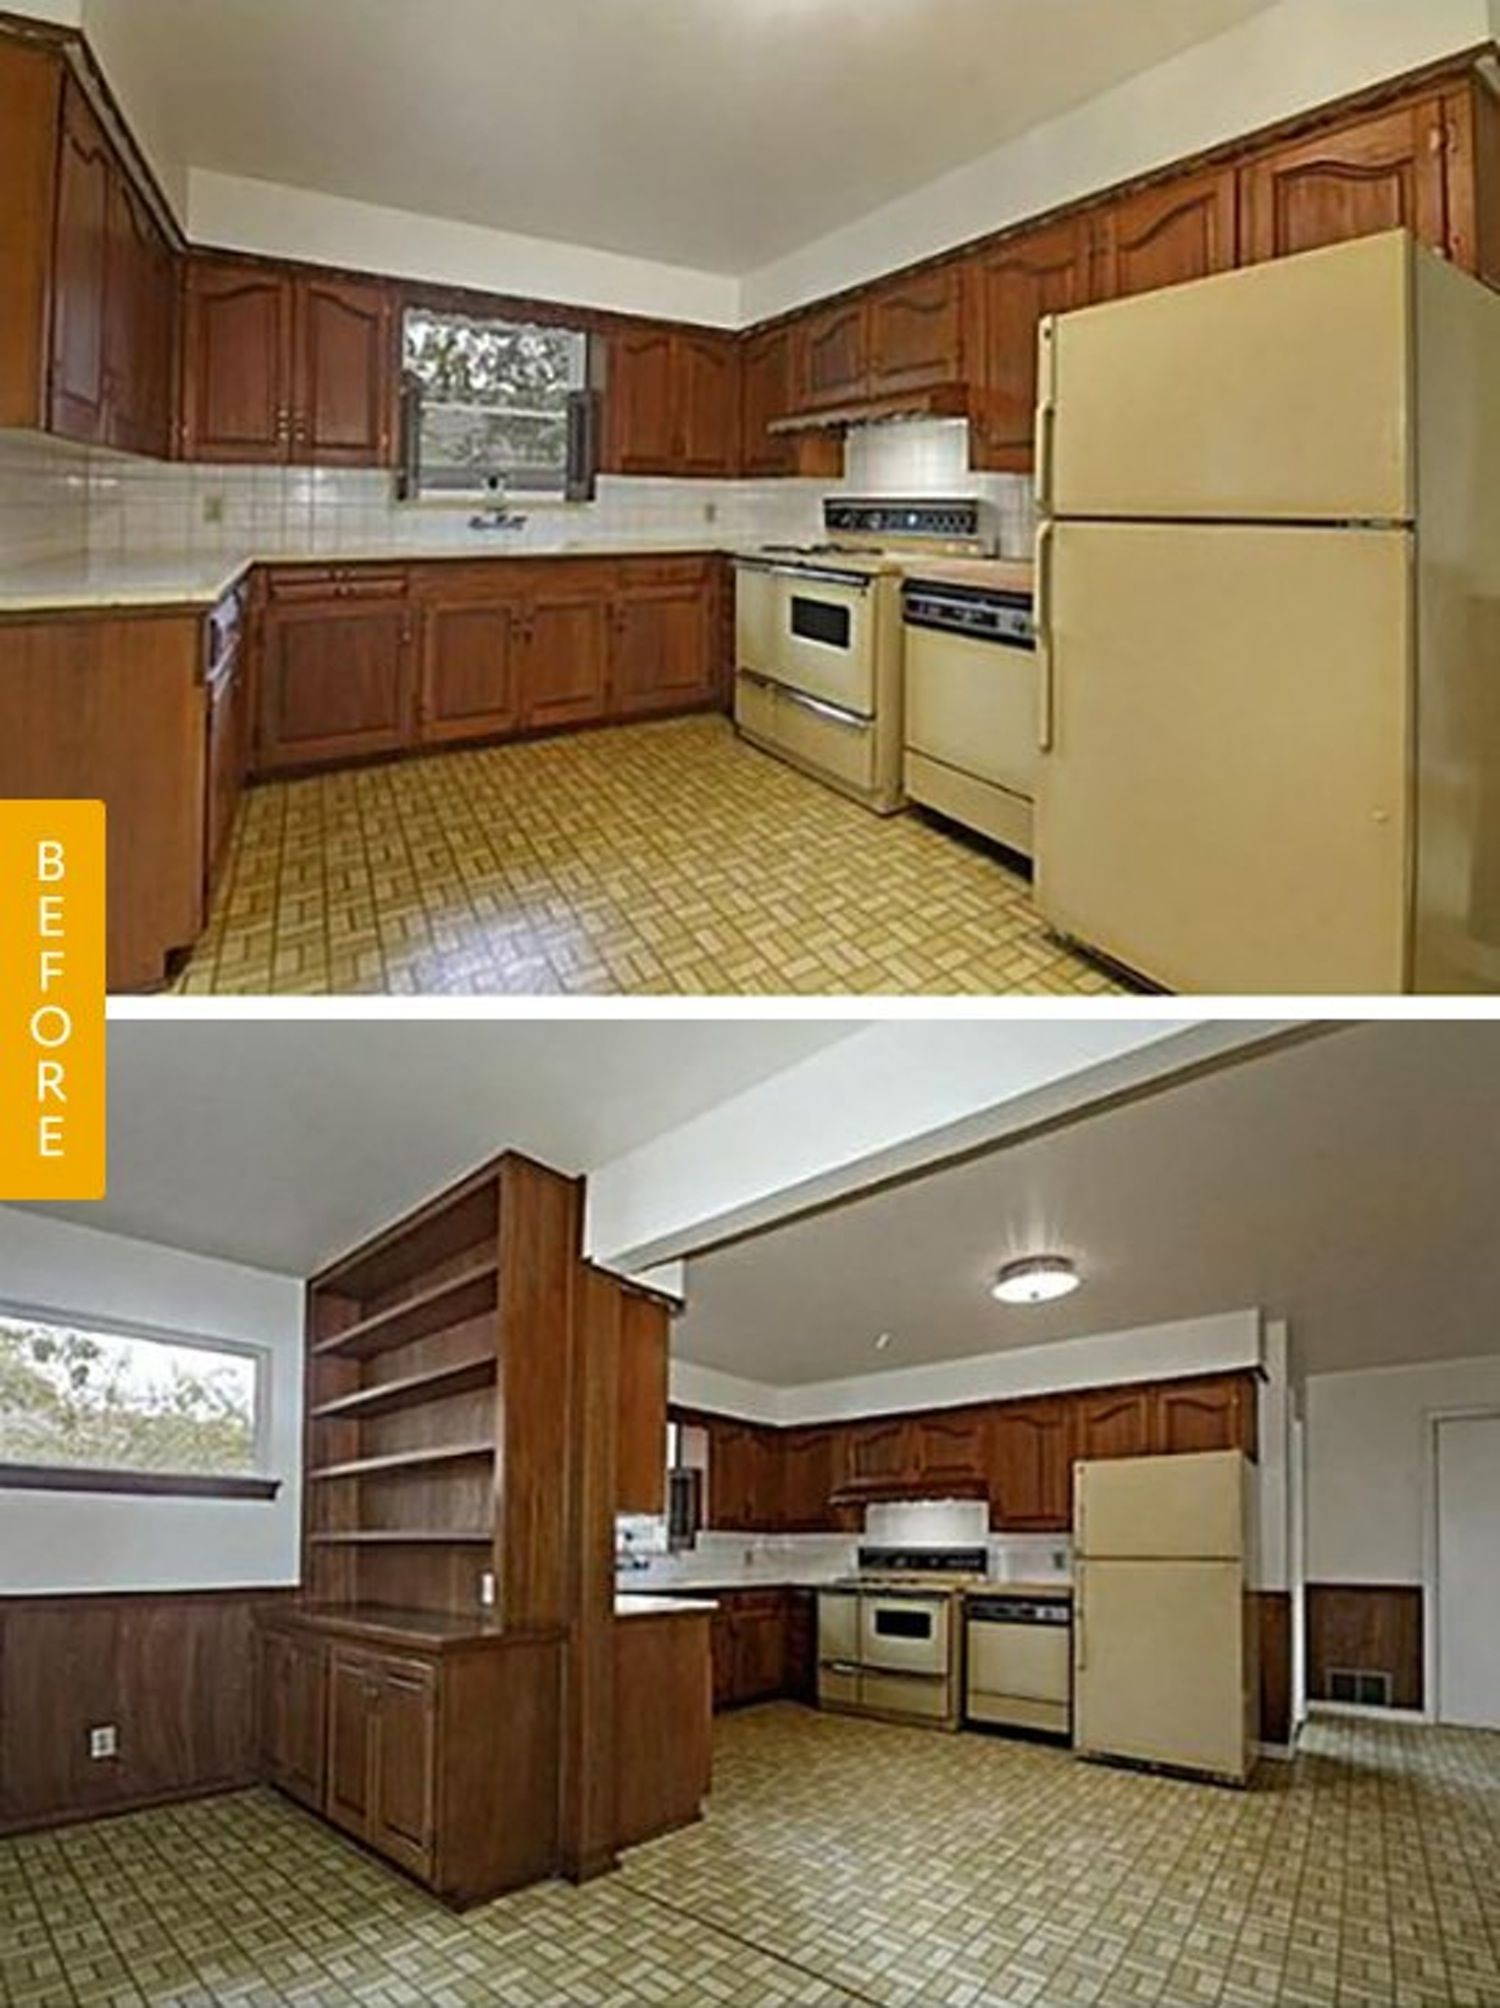 Before & After A 1950s Ranch Kitchen Gets Its First Makeover in 60